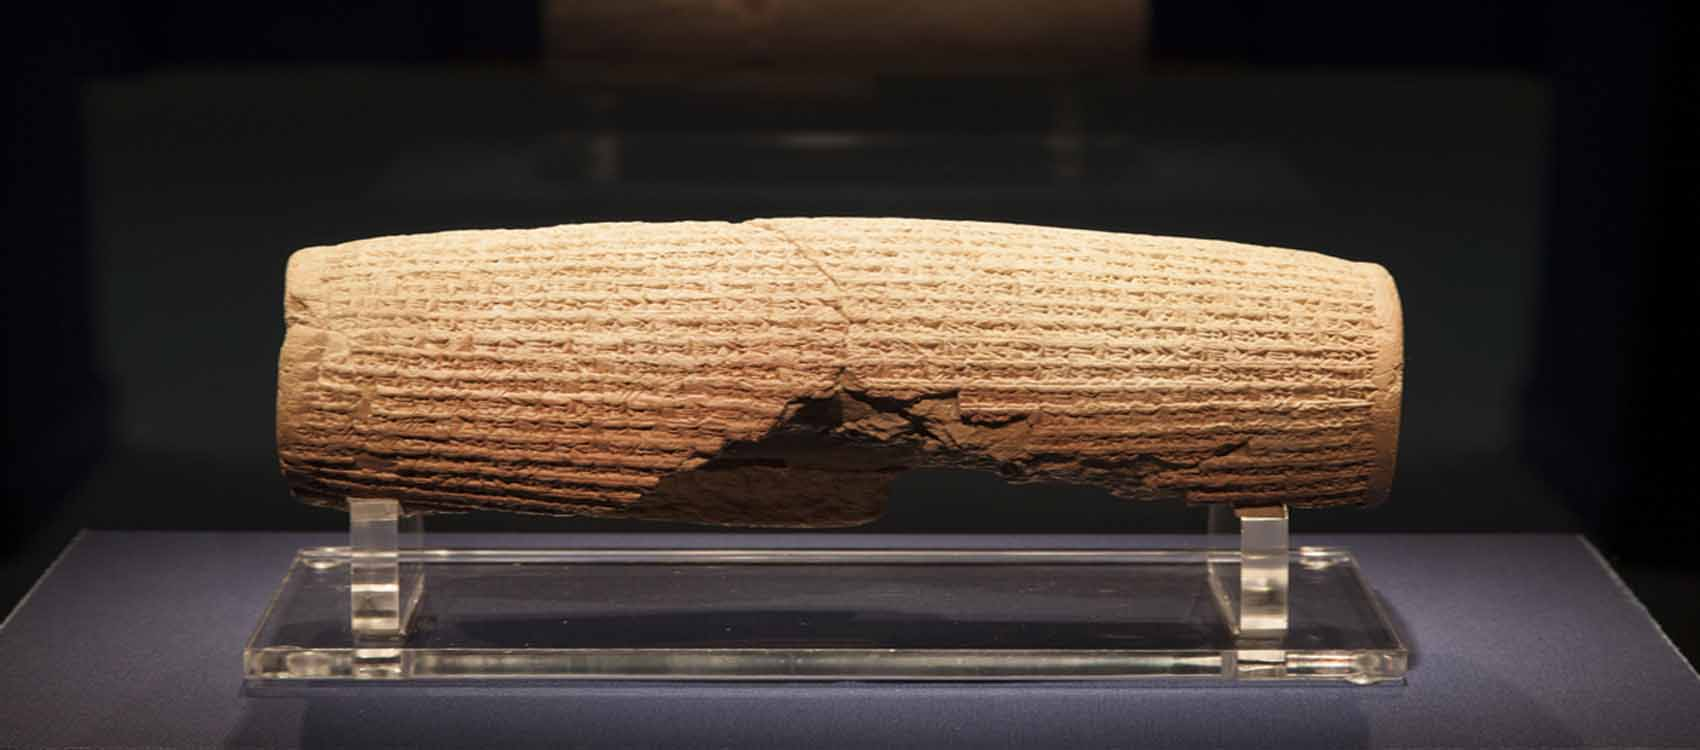 The Cyrus Cylinder,Cyrus the Great Cylinder,Cyrus the Great Charter,Human right Cylinder of Cyrus,Human Charter of Cyrus,The Human Right Cylinder, human right declaration